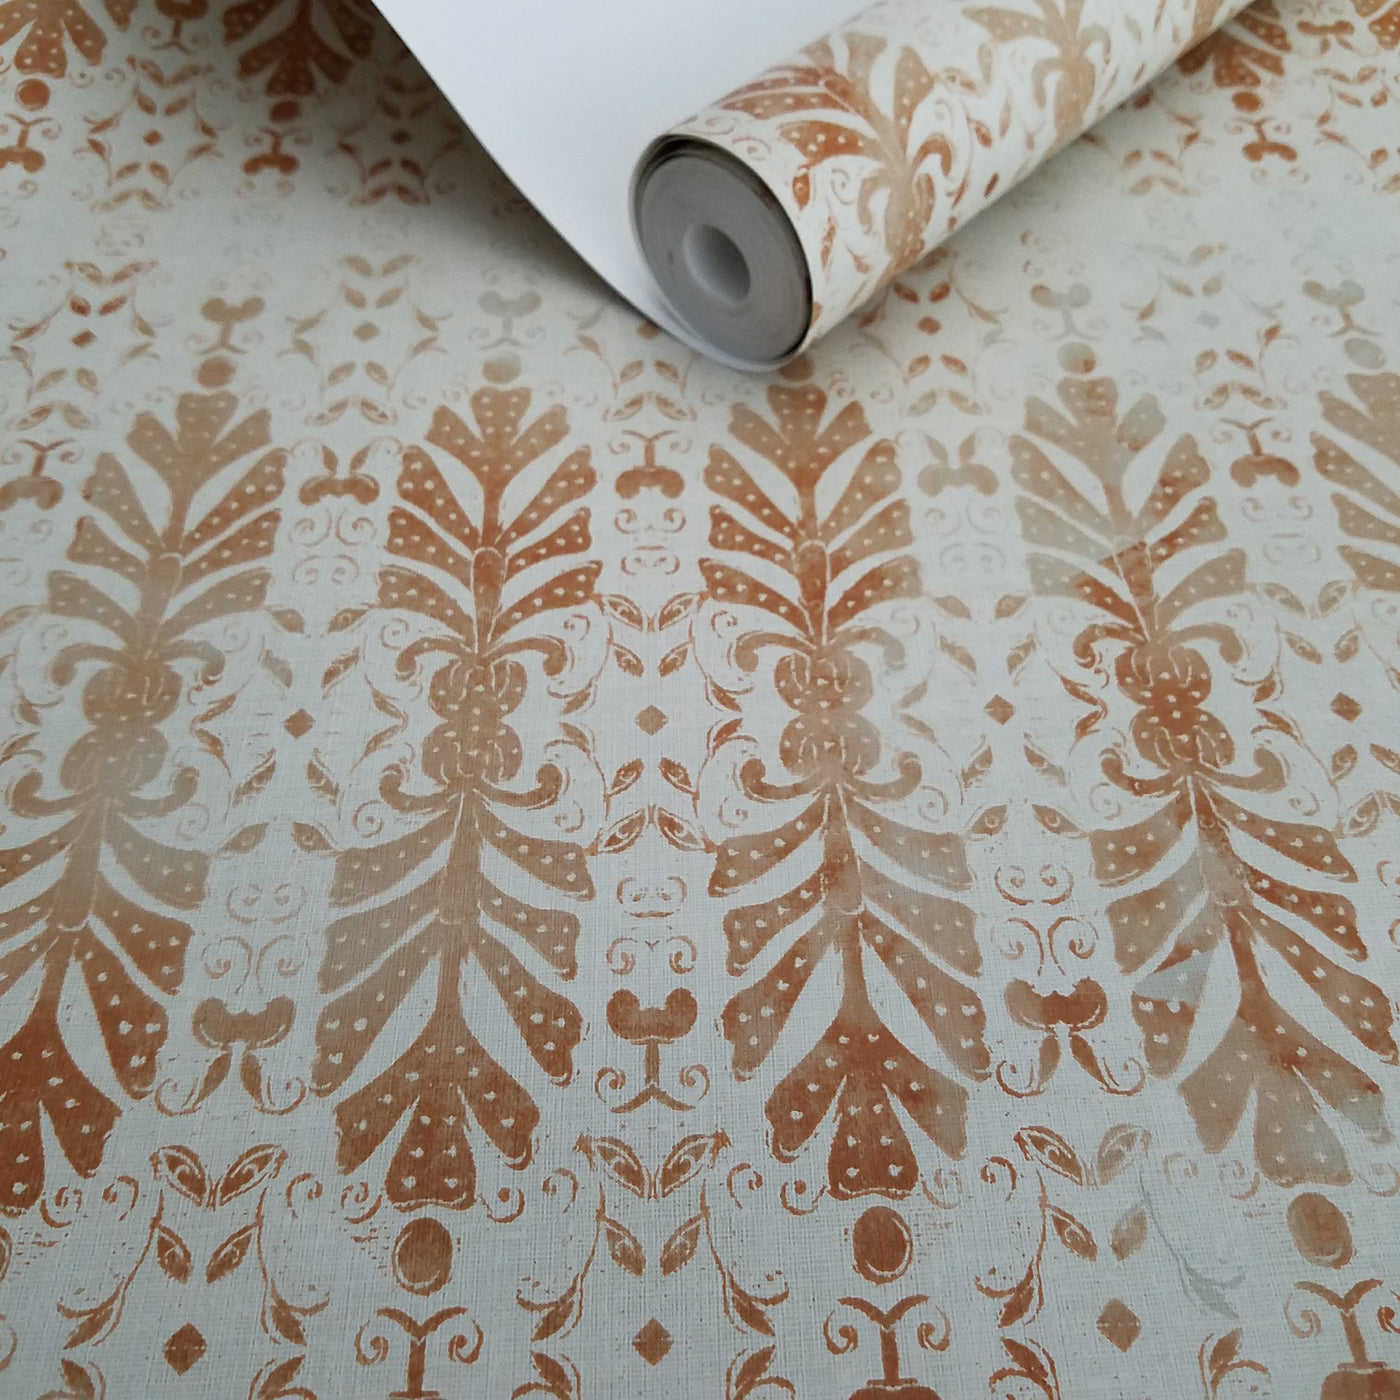 York Patina Vie Shangri La Fan Scandinavian Wallpaper